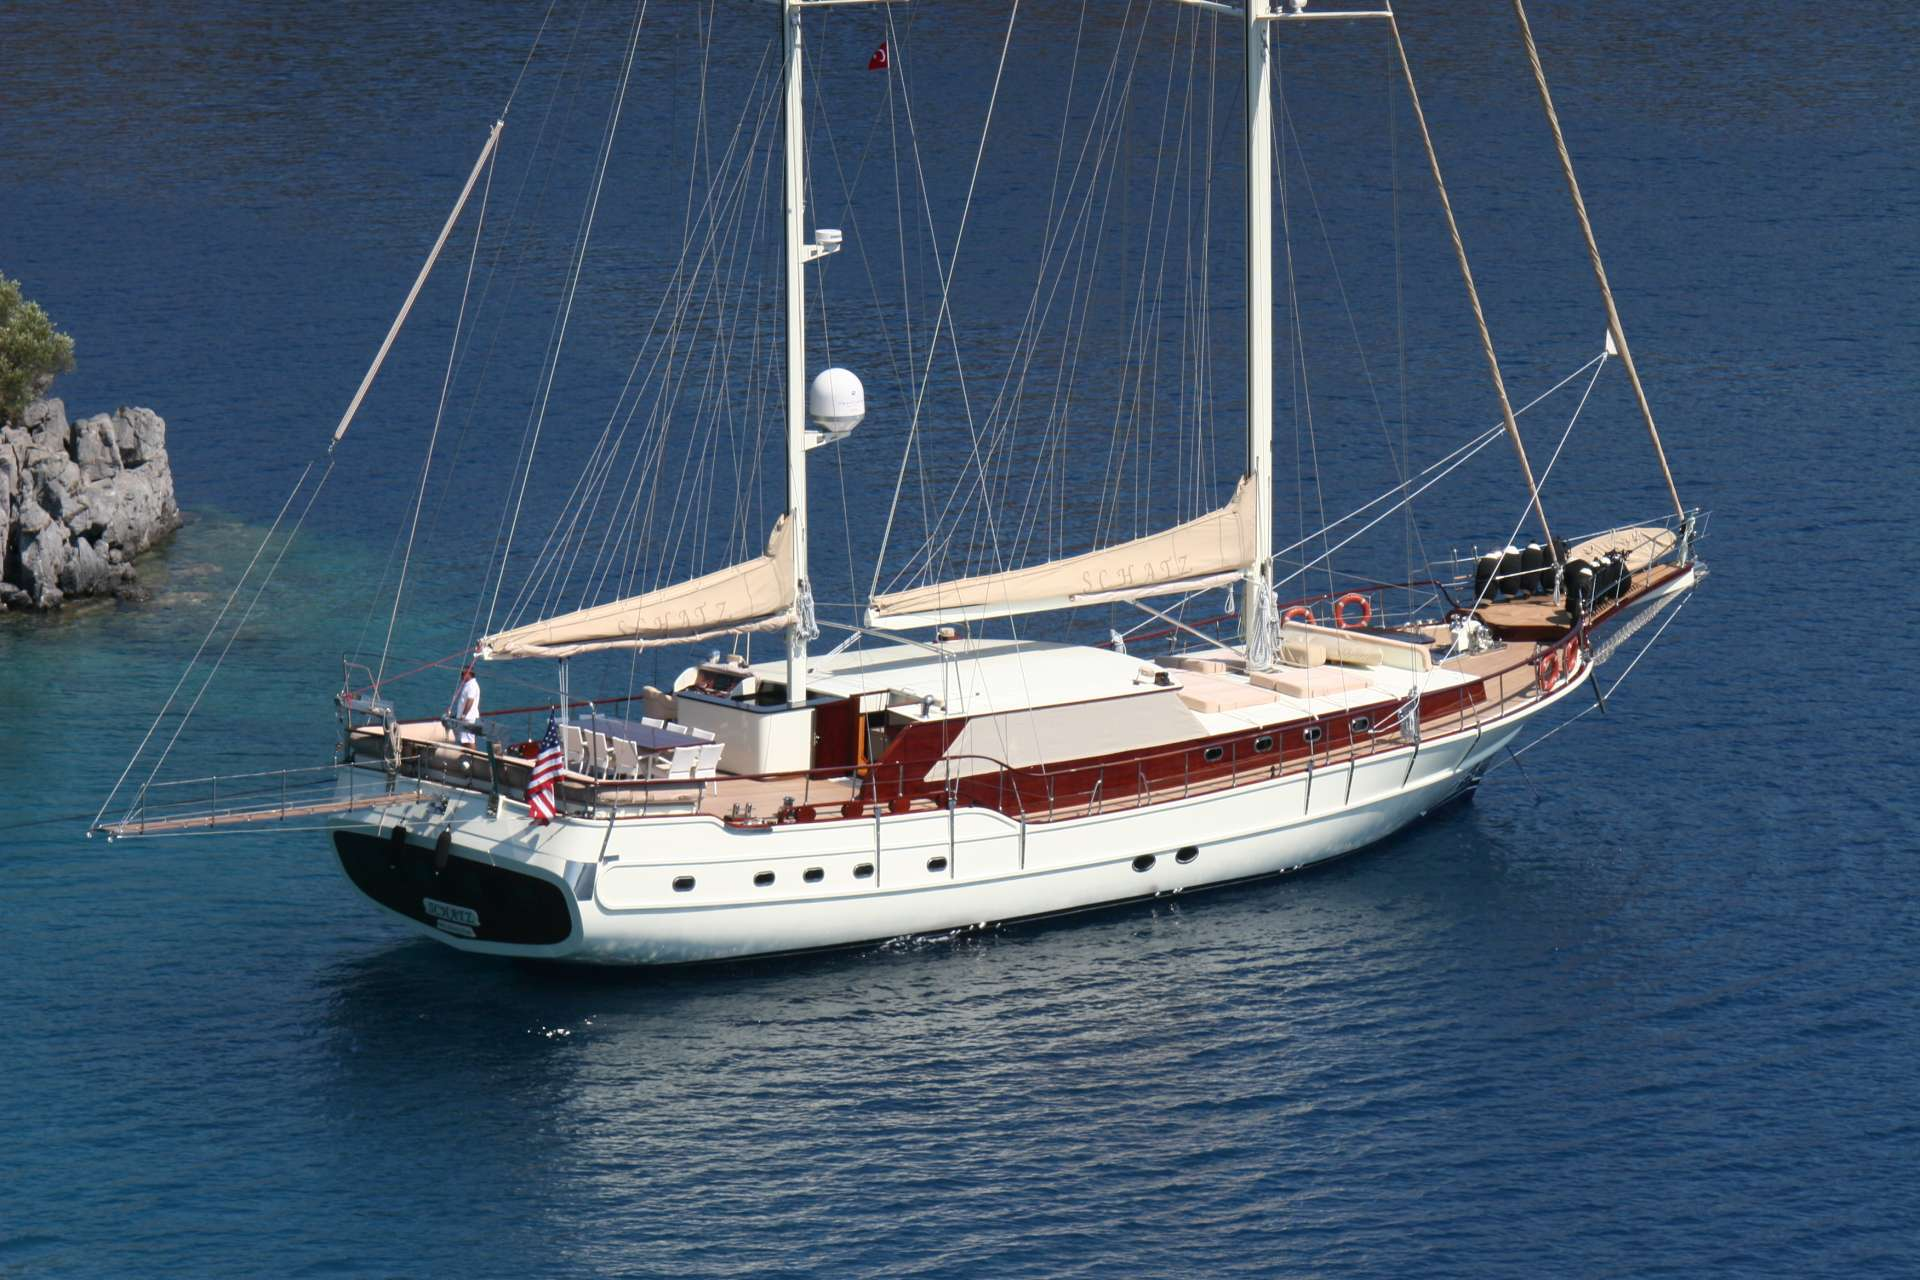 SCHATZ made her maiden voyage in 2005 and went through a comprehensive refit for her interior, exterior and machinery in 2013. She offers immense volume in her cabins due to her flat transom where the master cabin is located, beautifully decorated by large port holes facing straight at the sea bed. There is a VIP cabin located in the forward section, almost equal in size to the aft master, and three other double cabins, making this yacht ideal for groups up to 10 guests. Upon entering the vessel, it is a natural instinct to drop your bags on deck and lay down on the inviting full beam lounge cushions. The spacious and bimini protected aft dining table is supported by a fully stocked bar with all the amenities. You will find all the modern comforts on board including wifi, cable TV, games and plenty of water sports that can be enjoyed to its fullest thanks to the tender with a powerful 115hp outboard engine. With plenty of deck space for sun tanning in all sections, a powerful air conditioning system and a wonderful crew, this is the perfect yacht to enjoy a relaxing time at sea.